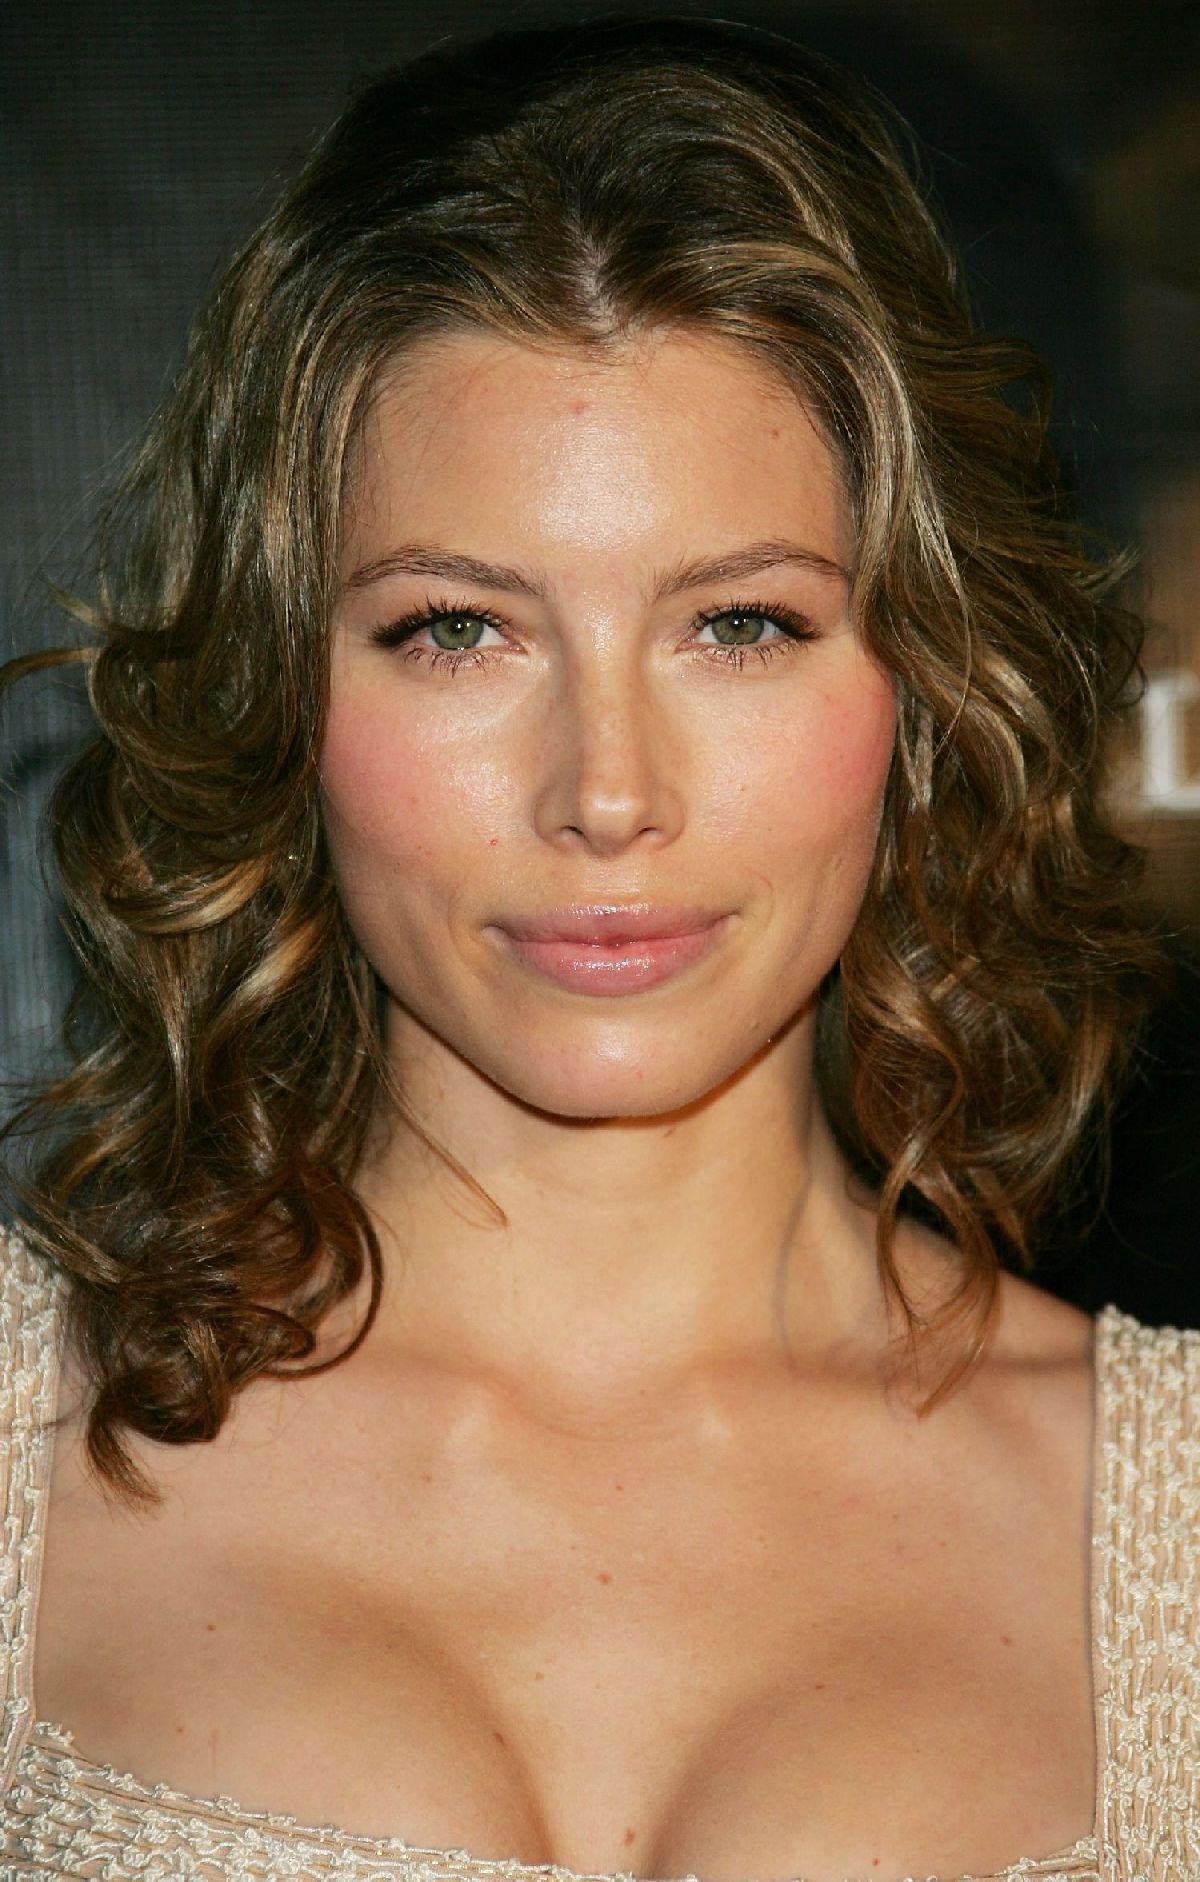 jessica biel 05 Kim Kardashian Naked the one and only is back again naked with boobs flying ...